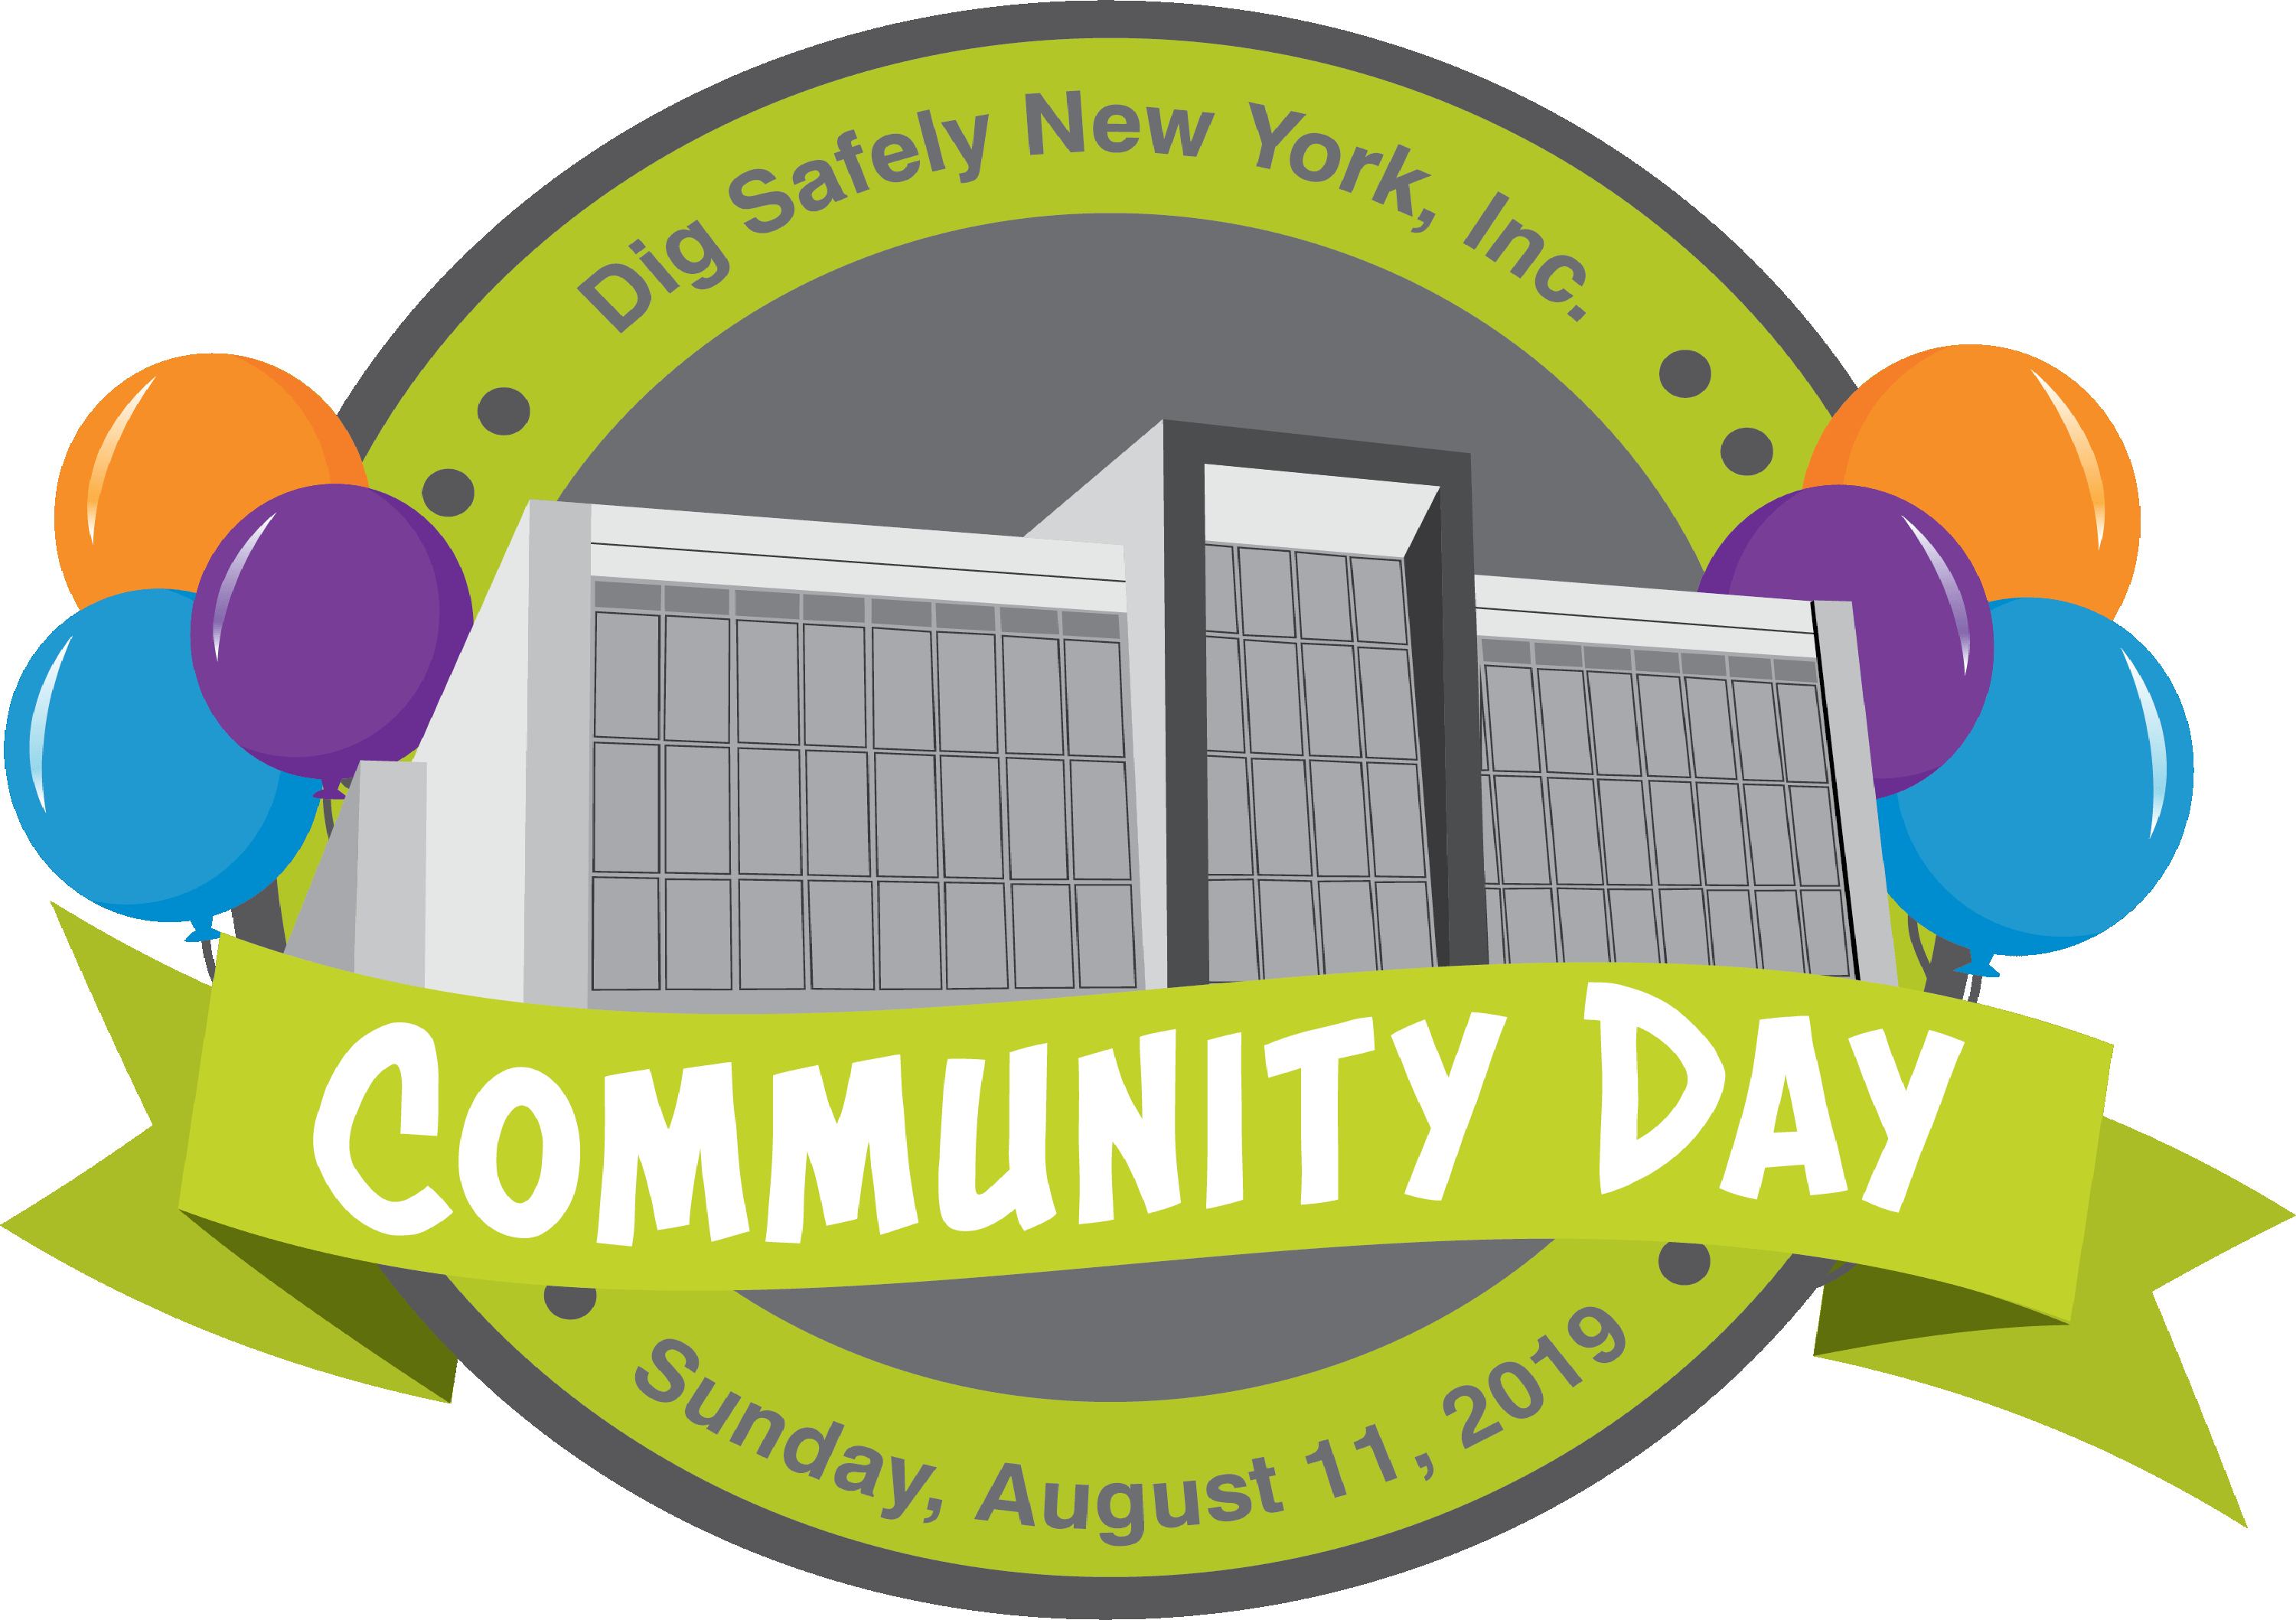 Dig Safely New York, Inc. Community Day | August 11th